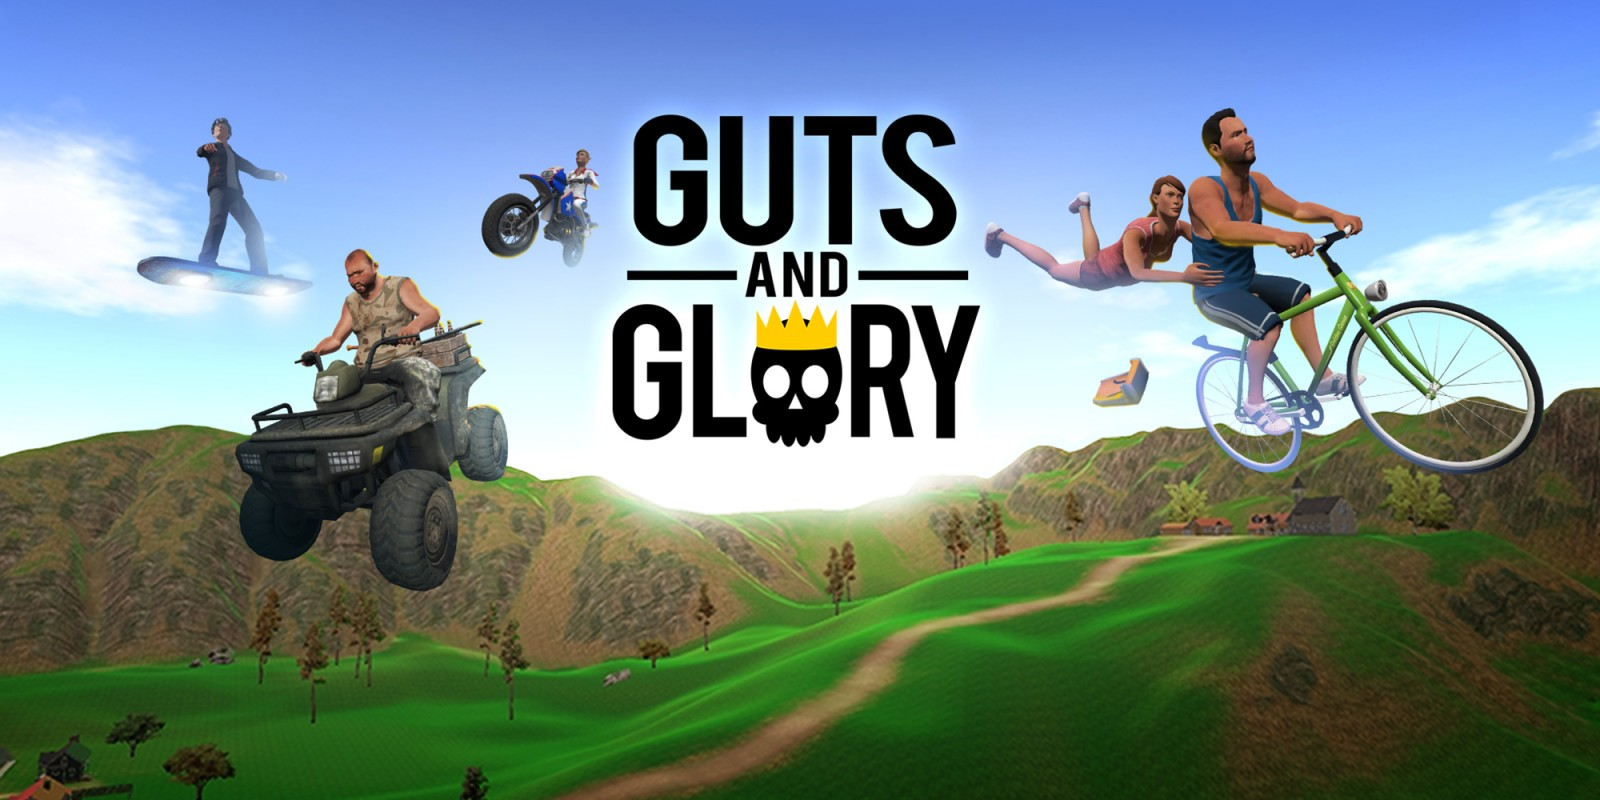 guts and glory download 2018